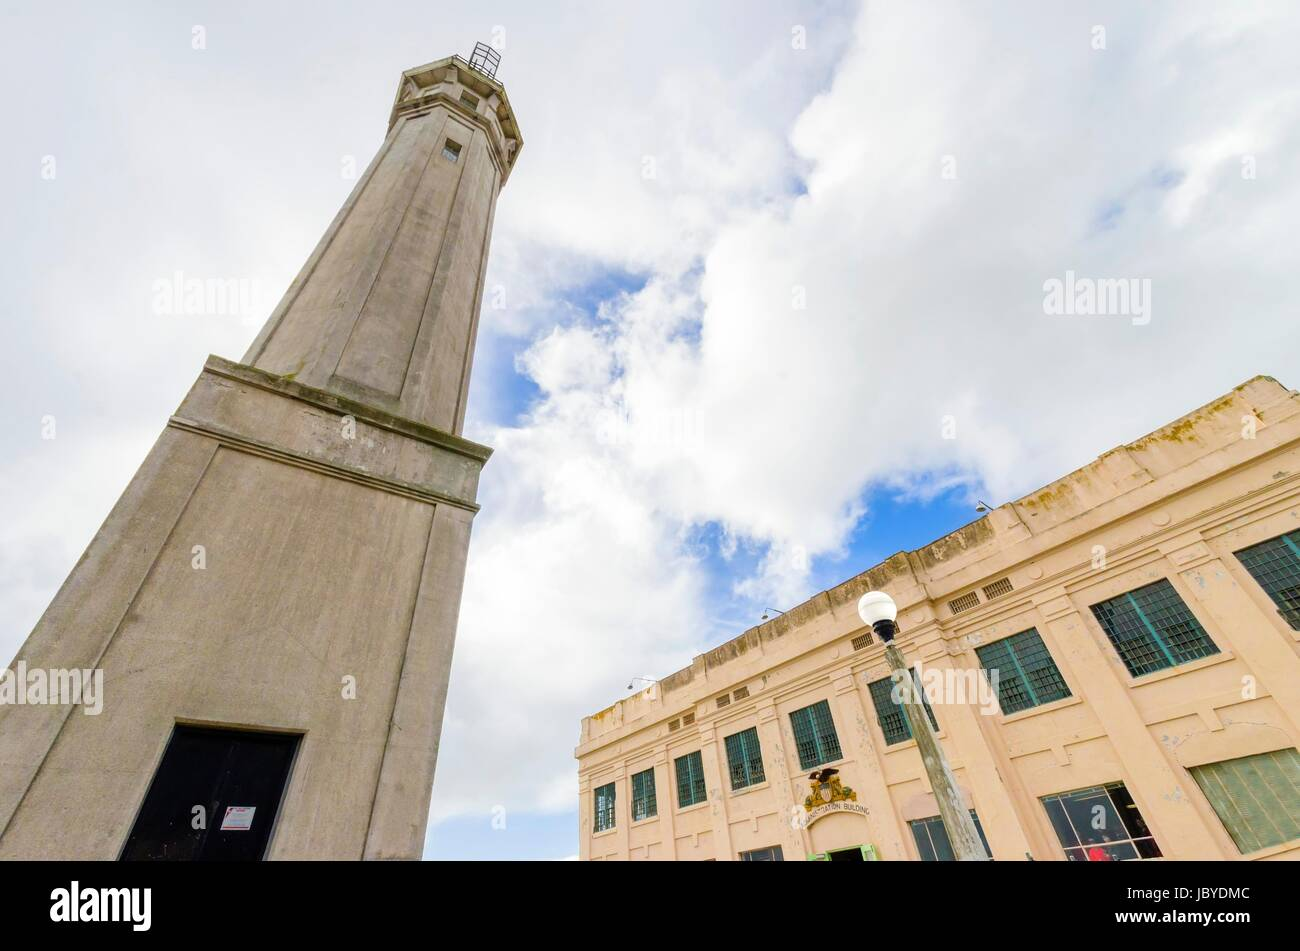 The Lighthouse at the entrance of the Administration Building on Alcatraz island prison, now a museum in San Francisco, - Stock Image